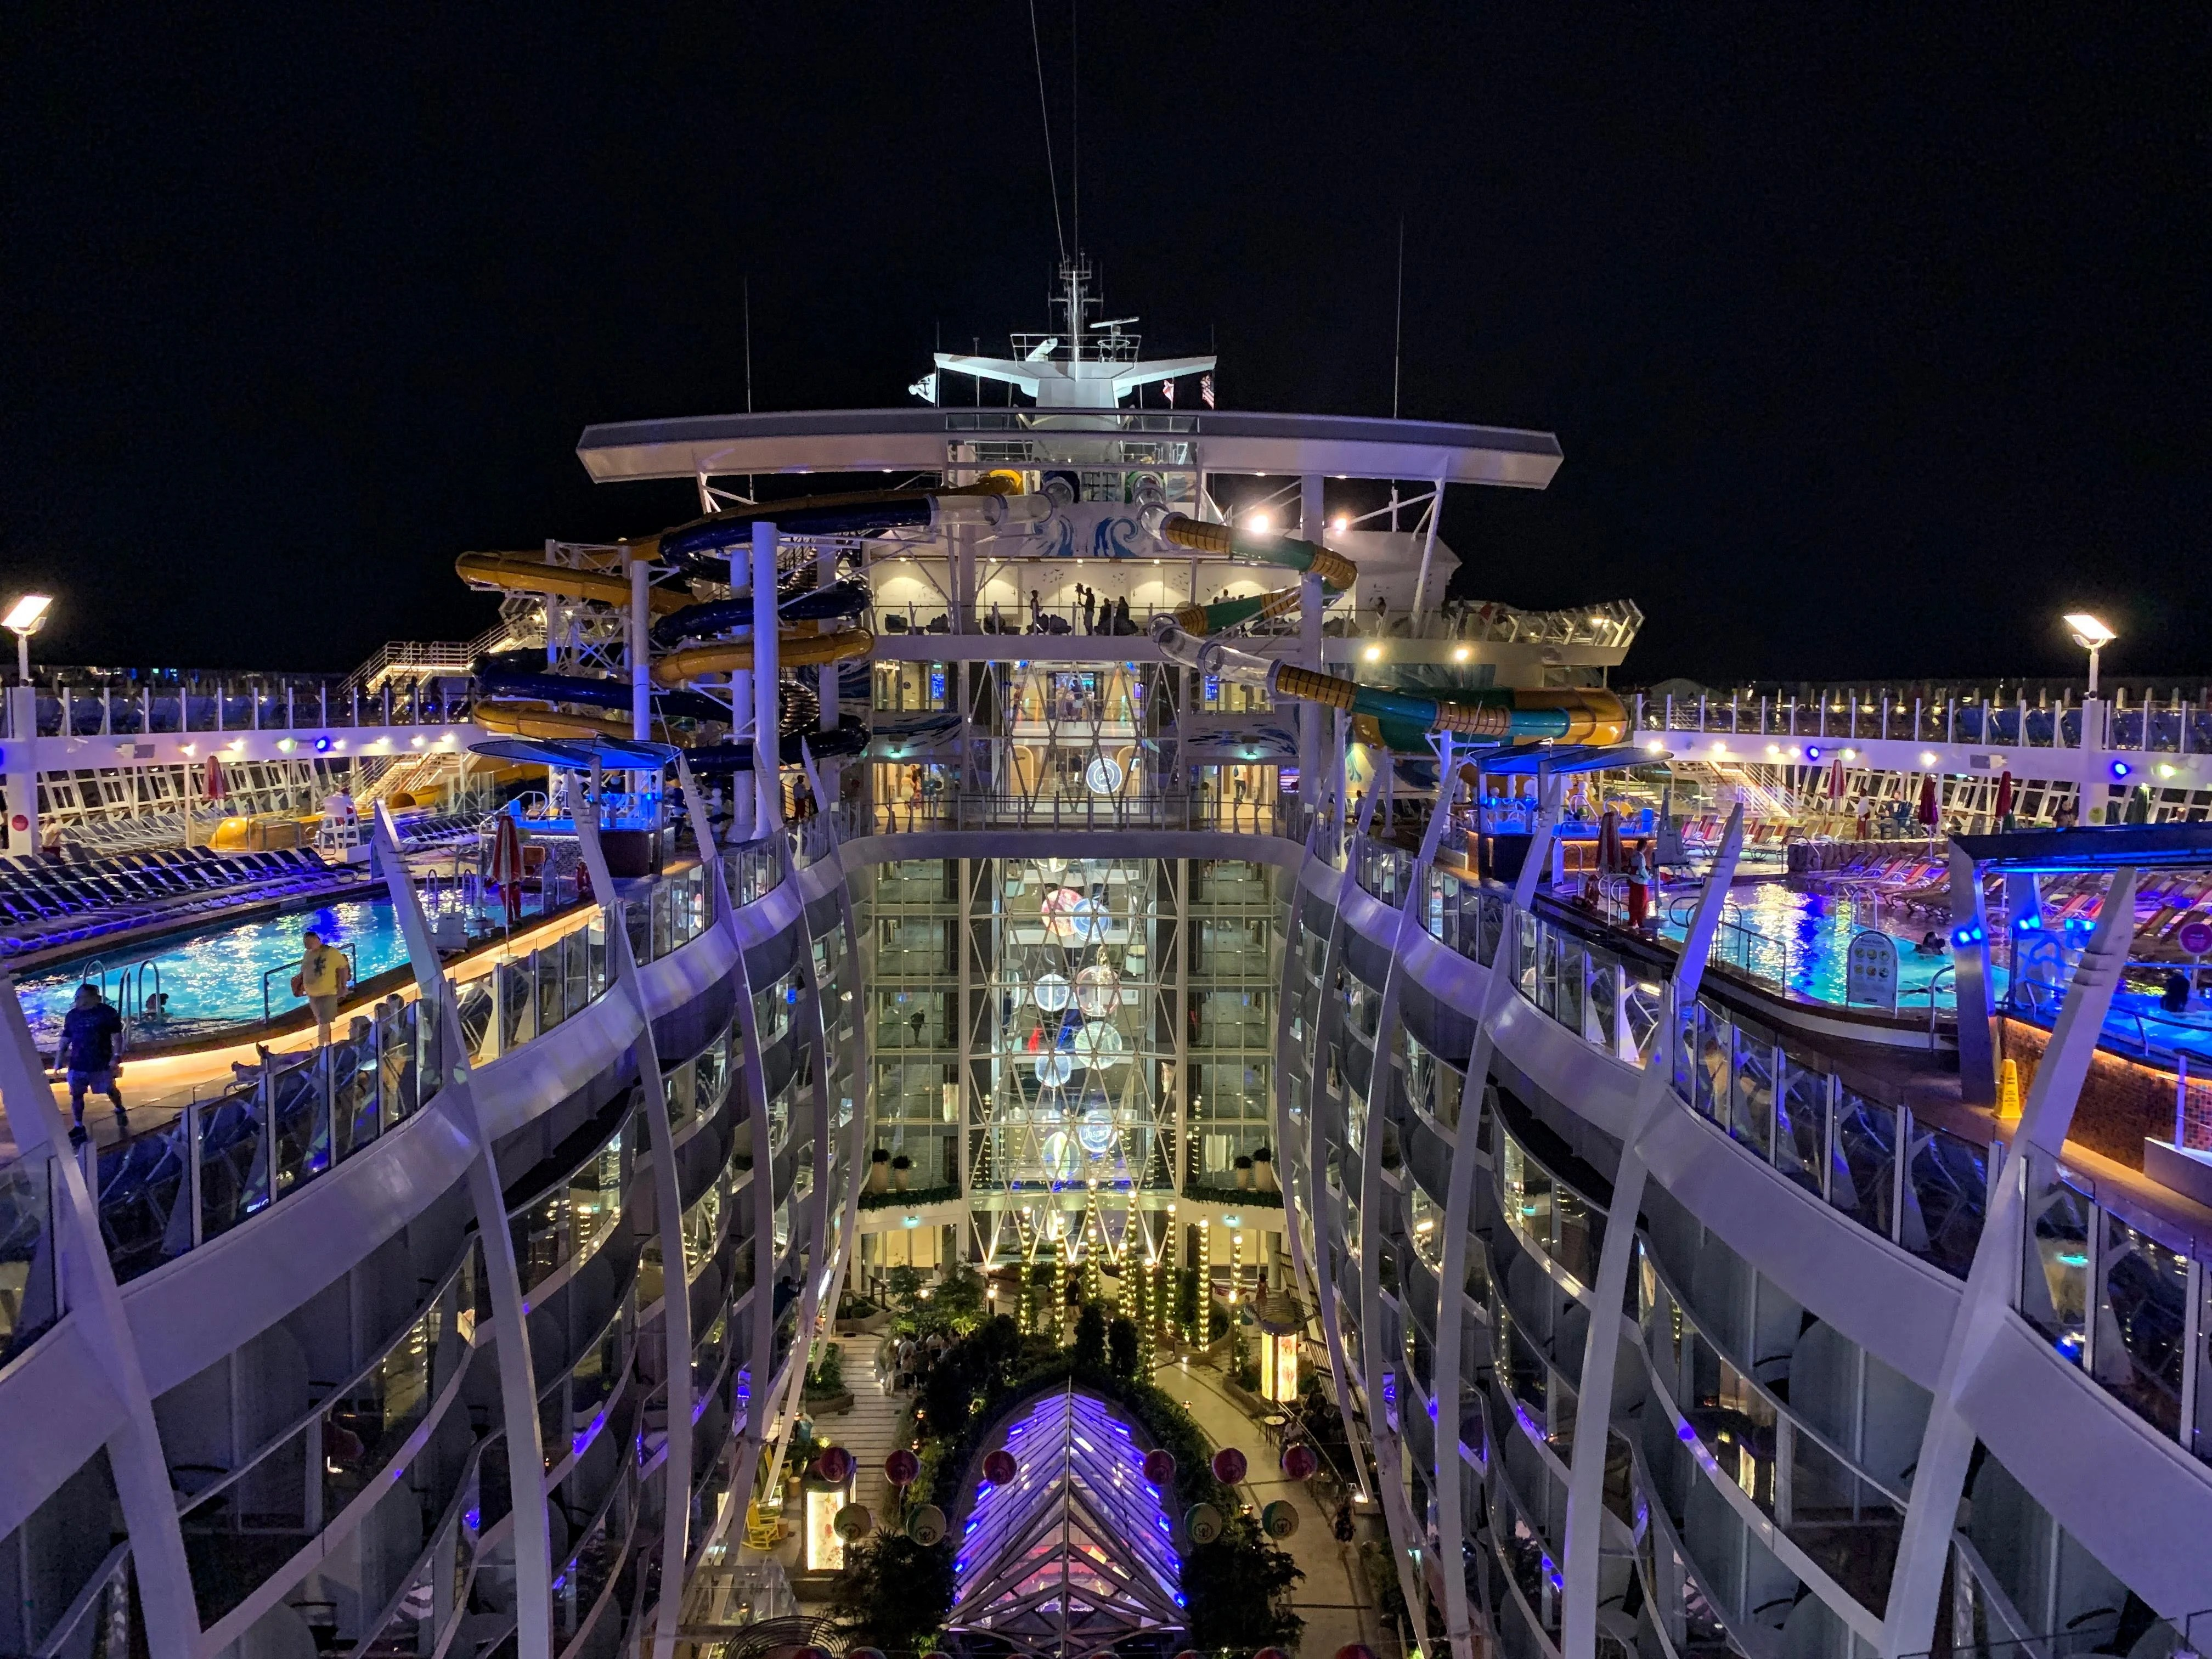 Royal Caribbean Announces What's Likely Another Record Breaking Cruise Ship